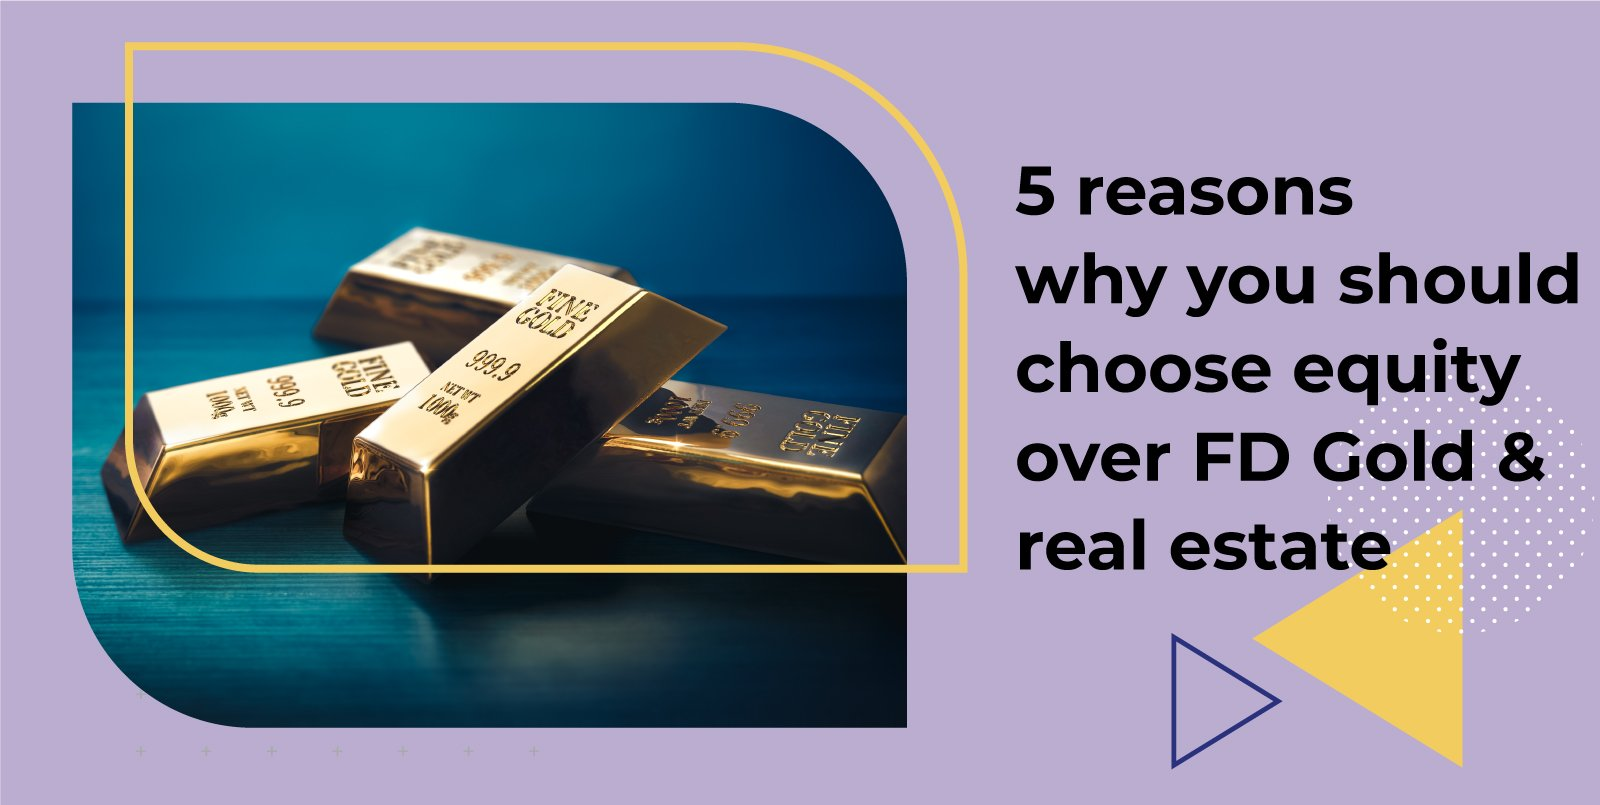 5 reasons why you should choose equity over FD, Gold and Real Estate